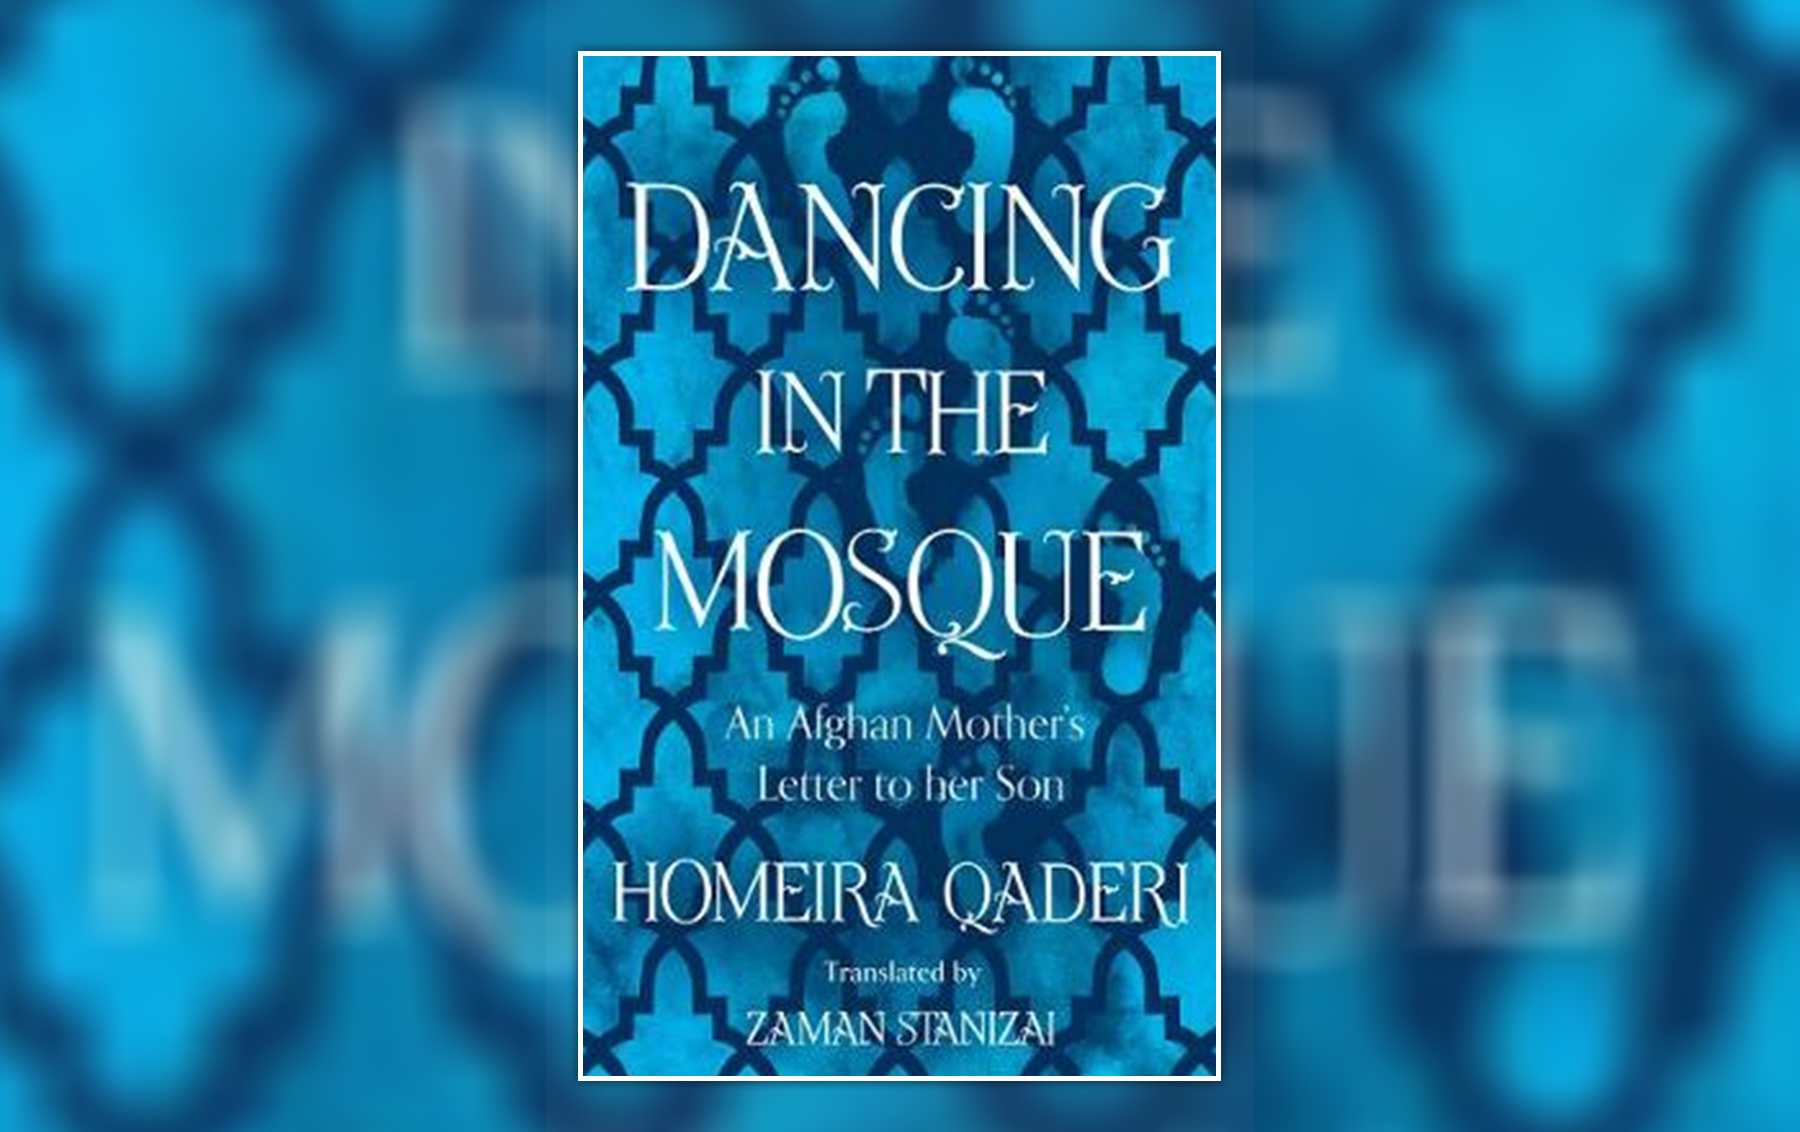 dancing-in-the-mosque:-an-afghan-mother's-letter-to-her-son,-by-homeira-qaderi-(2020),-translated-by-zaman-stanizai